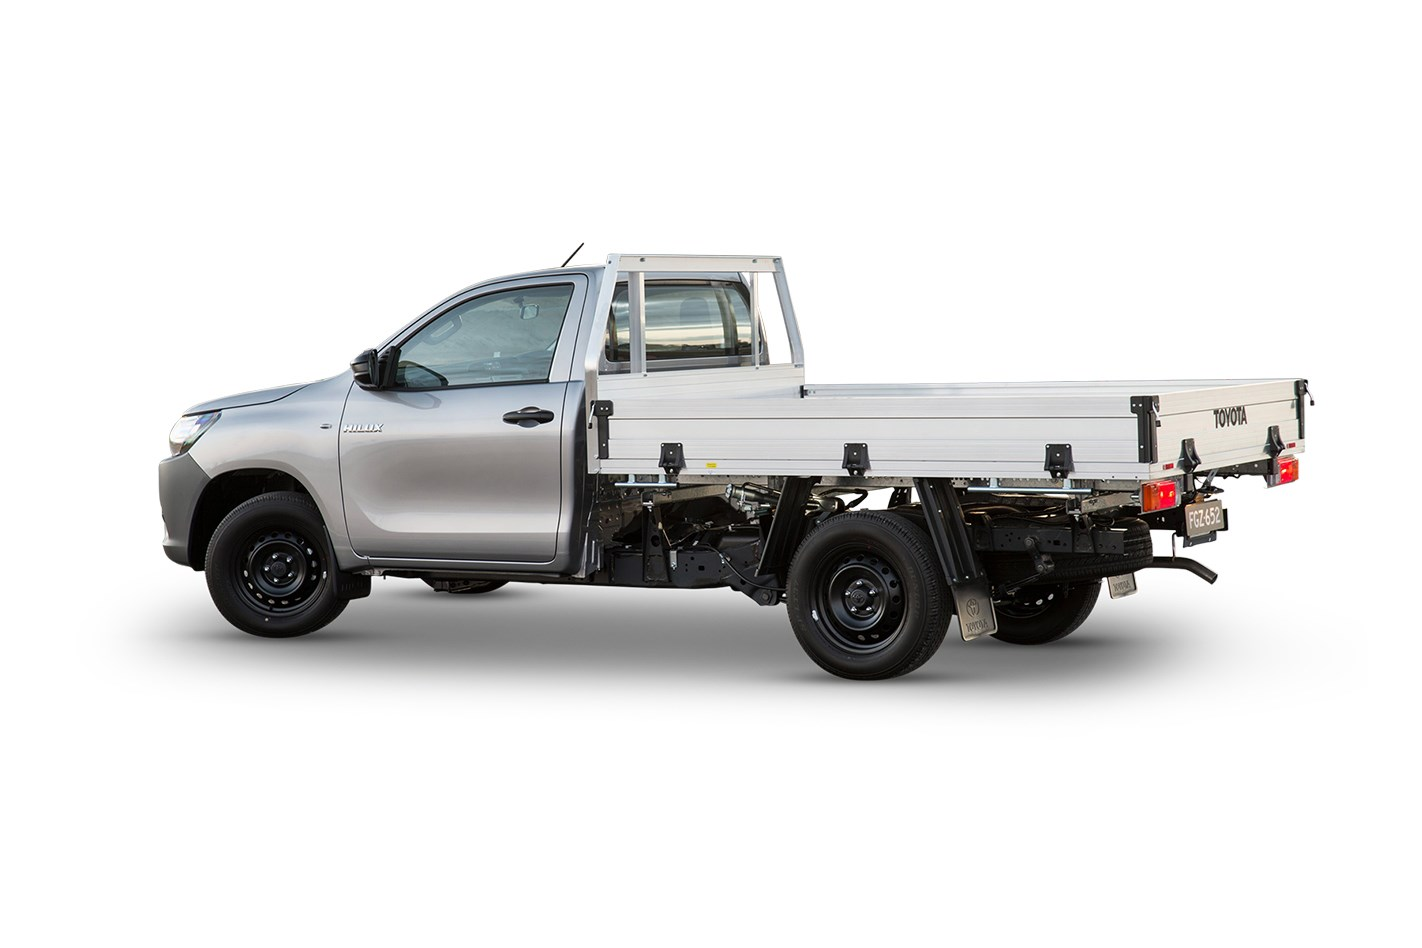 2016 toyota hilux sr 4x4 cab chassis review caradvice - 2016 Toyota Hilux Sr 4x4 Cab Chassis Review Caradvice 54